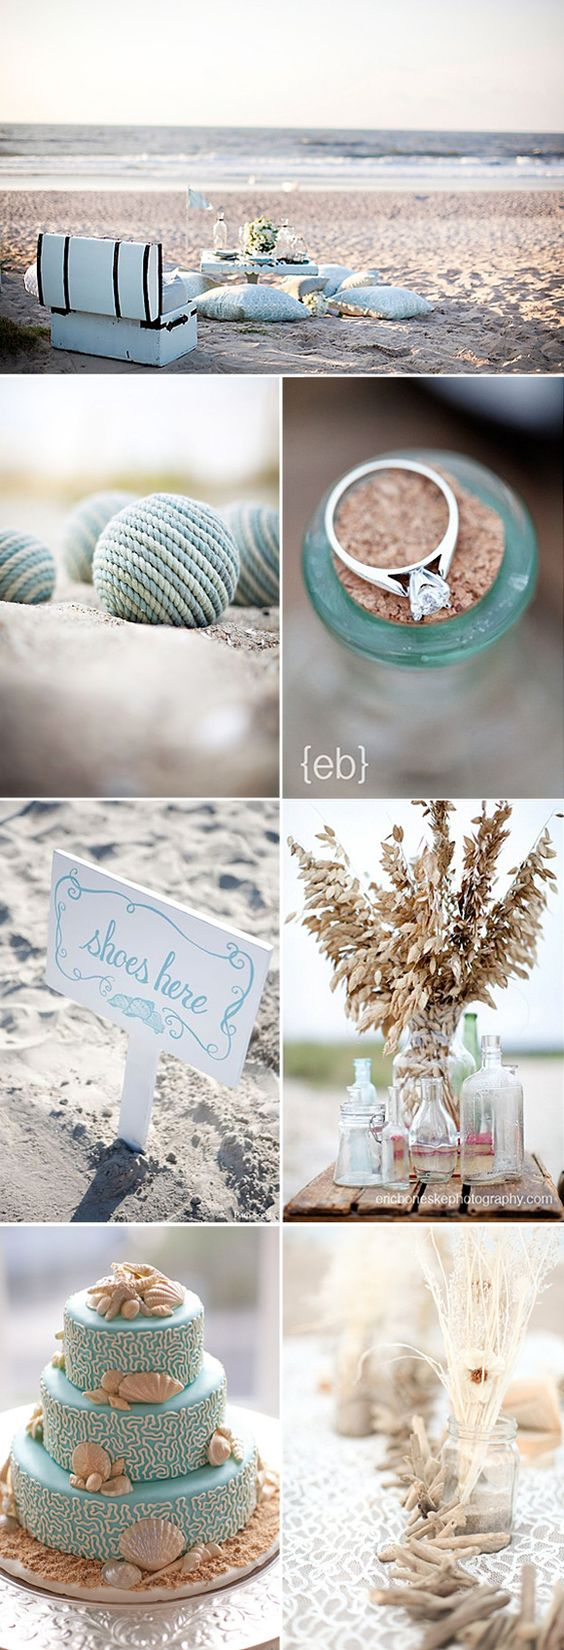 Bodas en la playa: Ideas para decorar